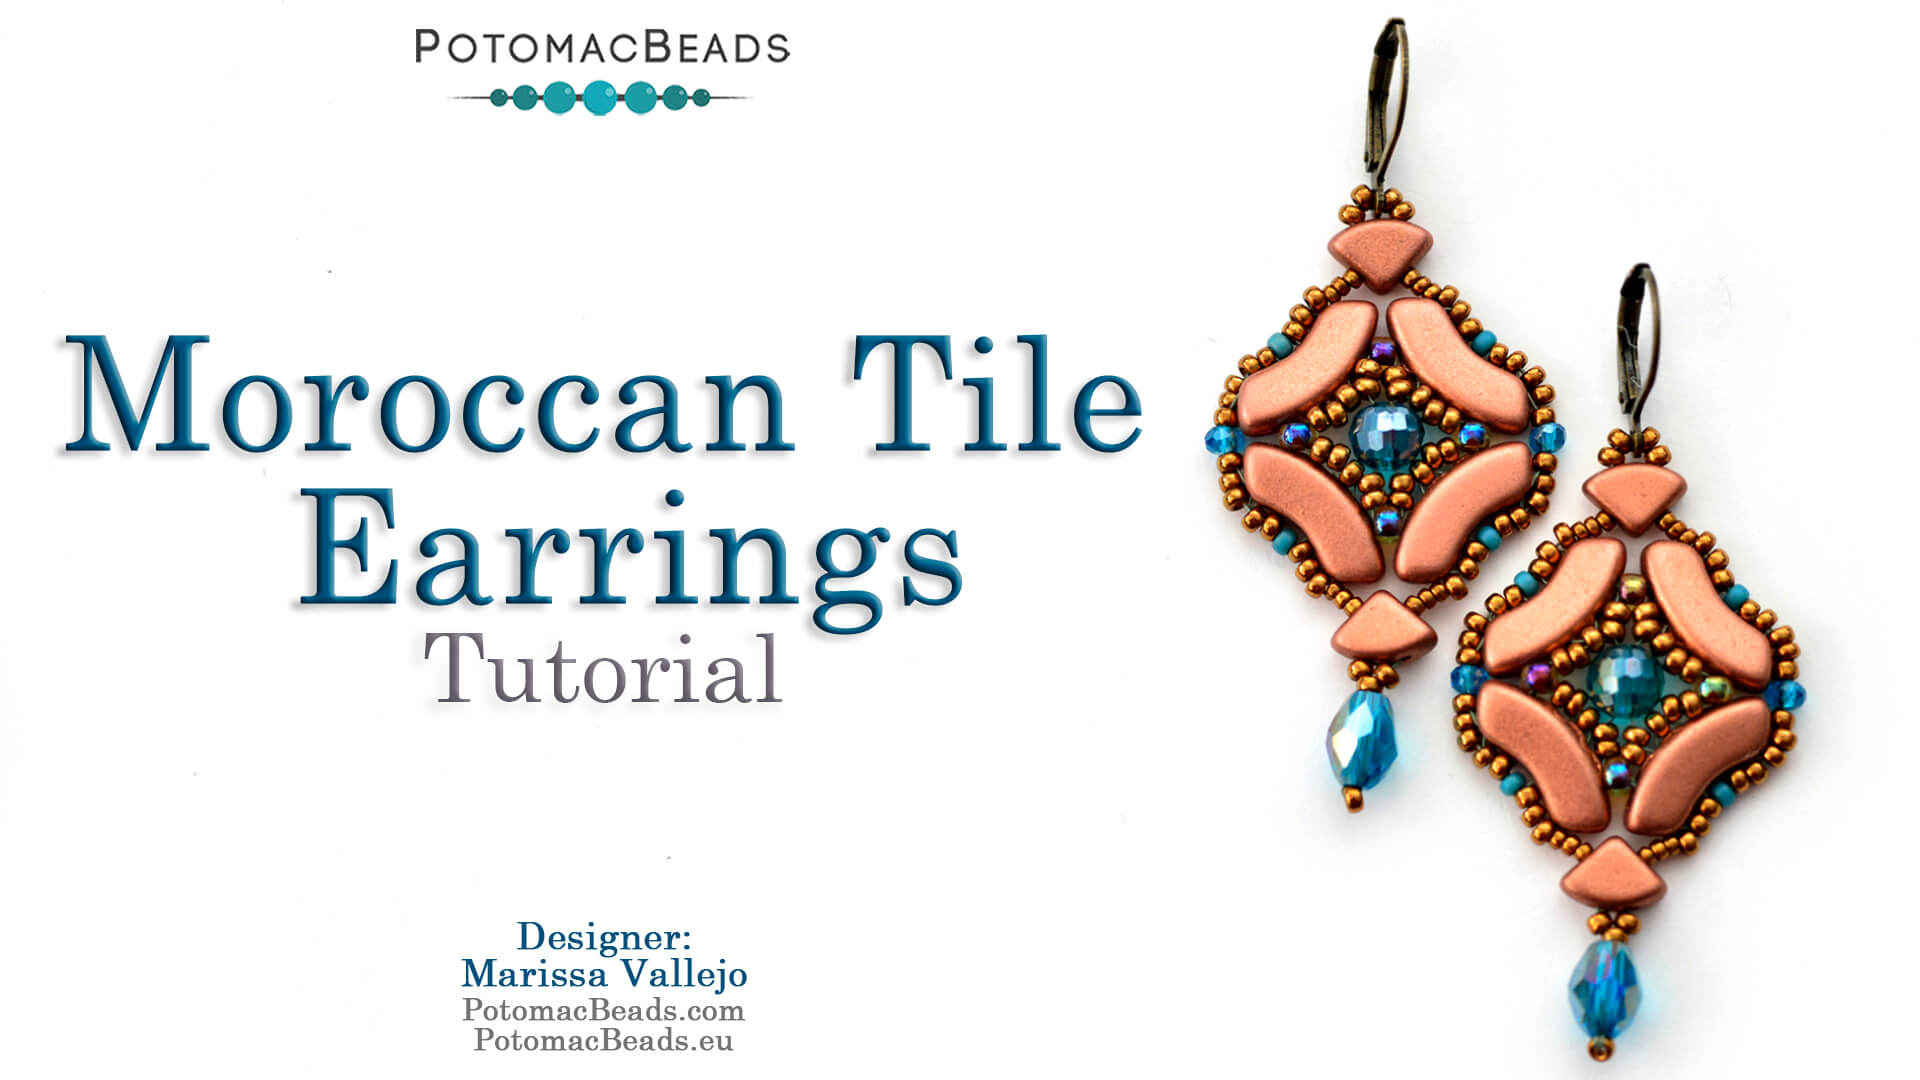 How to Bead Jewelry / Videos Sorted by Beads / QuadBow & PieDuo Bead Videos / Moroccan Tile Earrings Tutorial